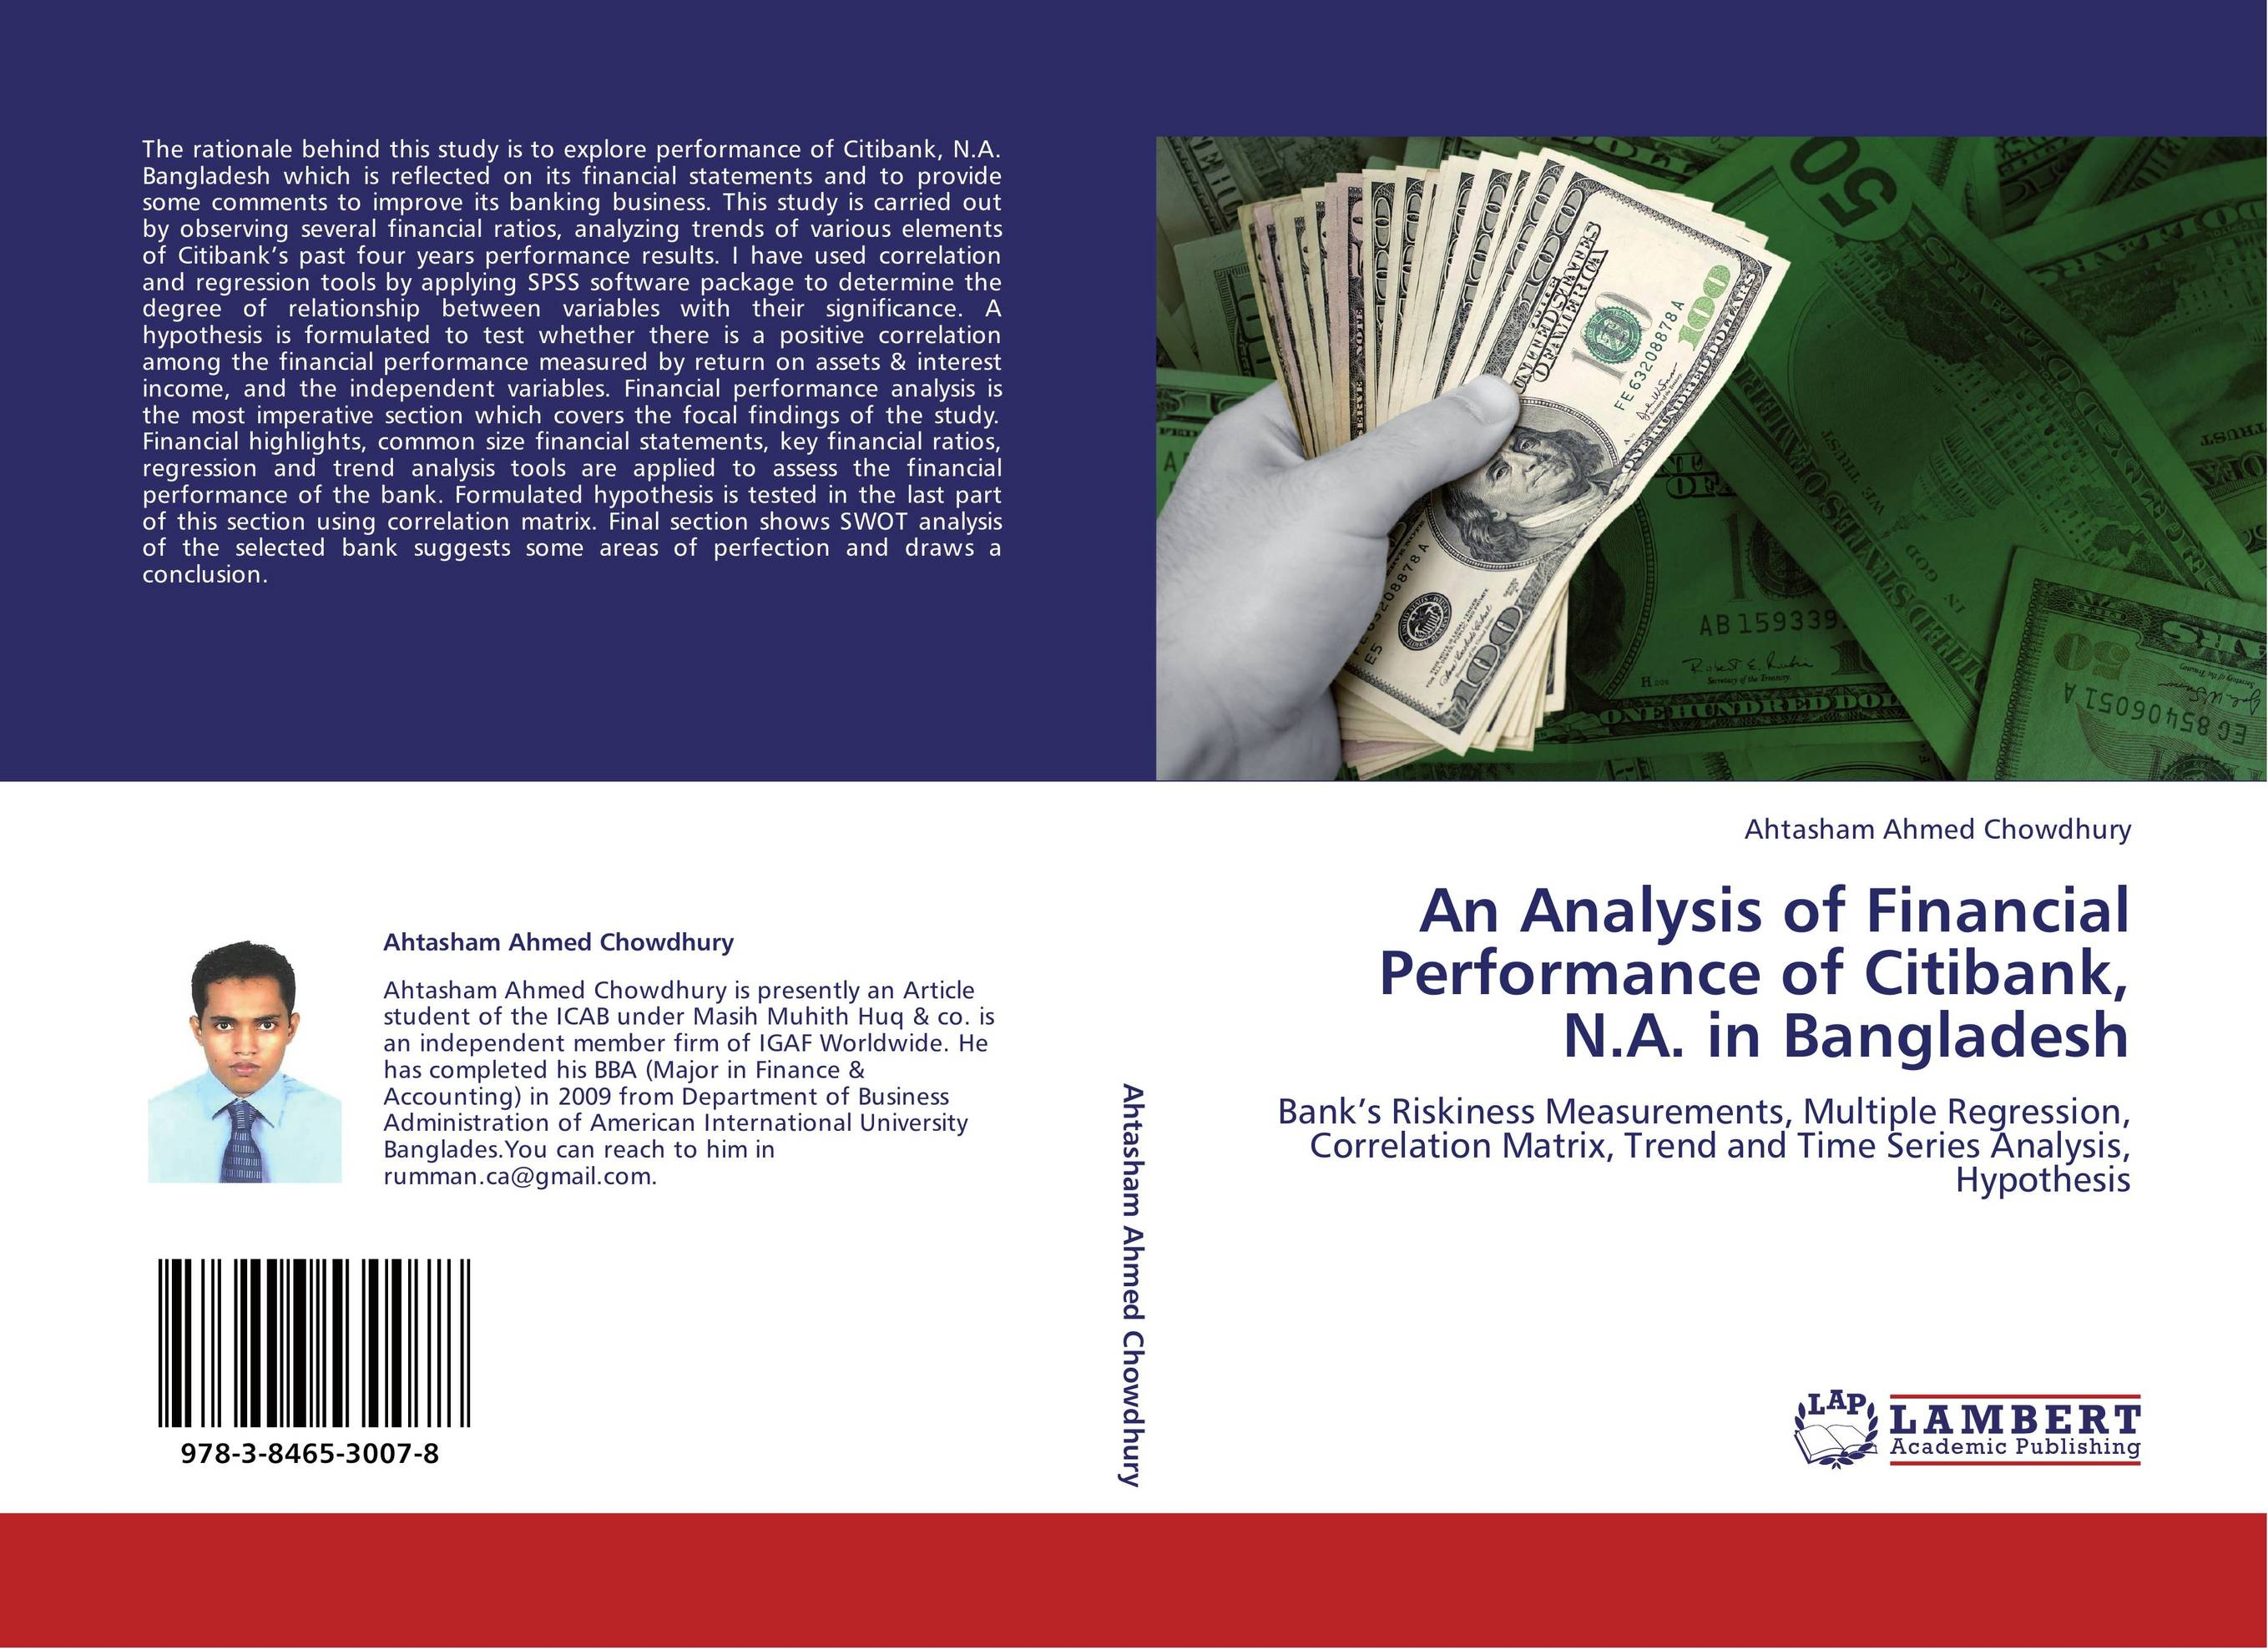 performance analysis of a private bank in bangladesh There are many popular and standard commercial bank now in bangladesh local and foreign bank are doing performance in a same way its really praiseworthy progress in bangladesh about banking sector now we are going to mention top 10 bank in bangladesh.